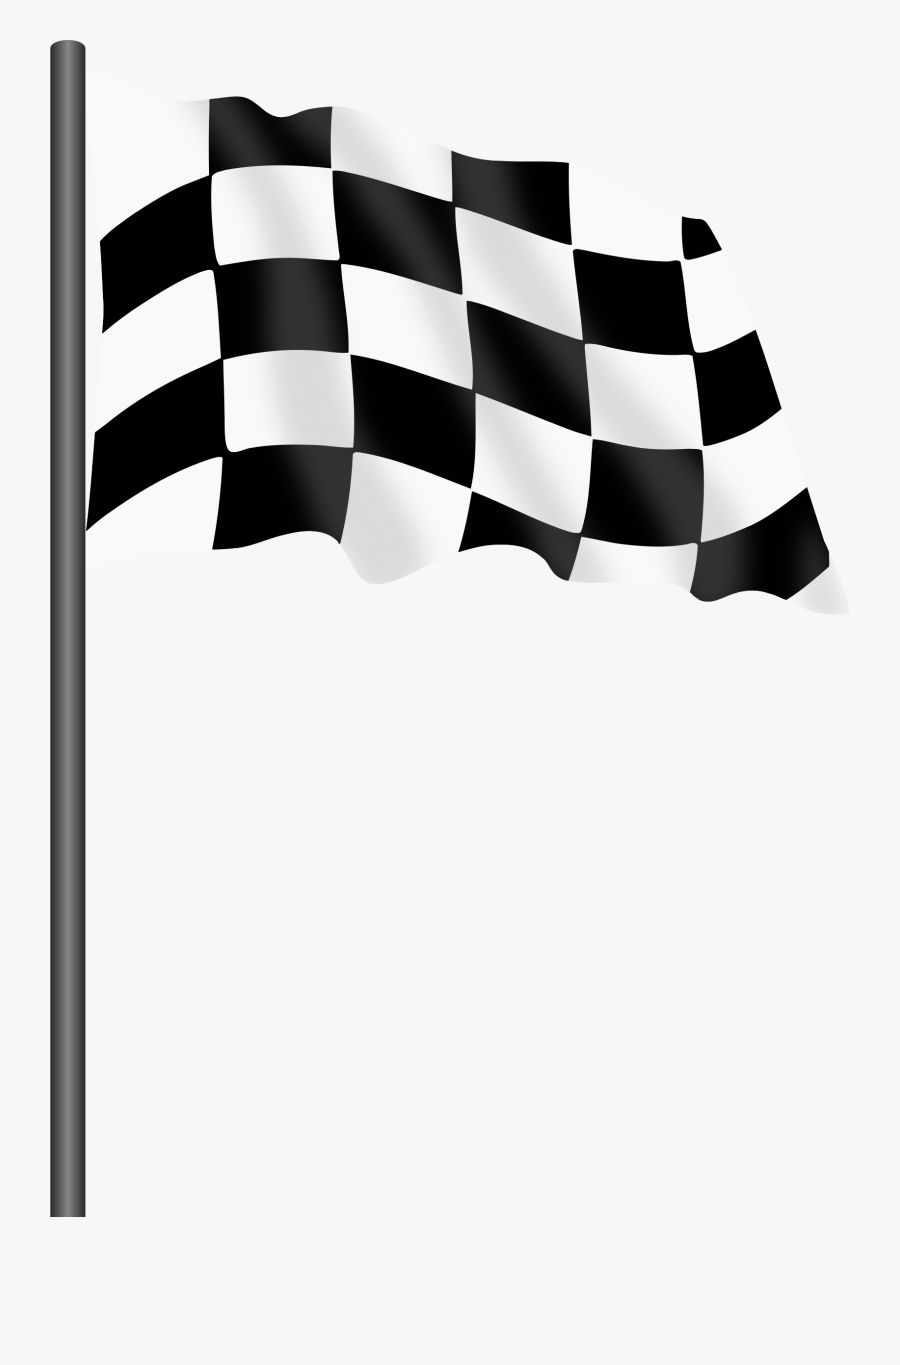 Download Chequered Flag Png Clipart Racing Flags Need - Clip Art Chequered Flag, Transparent Clipart